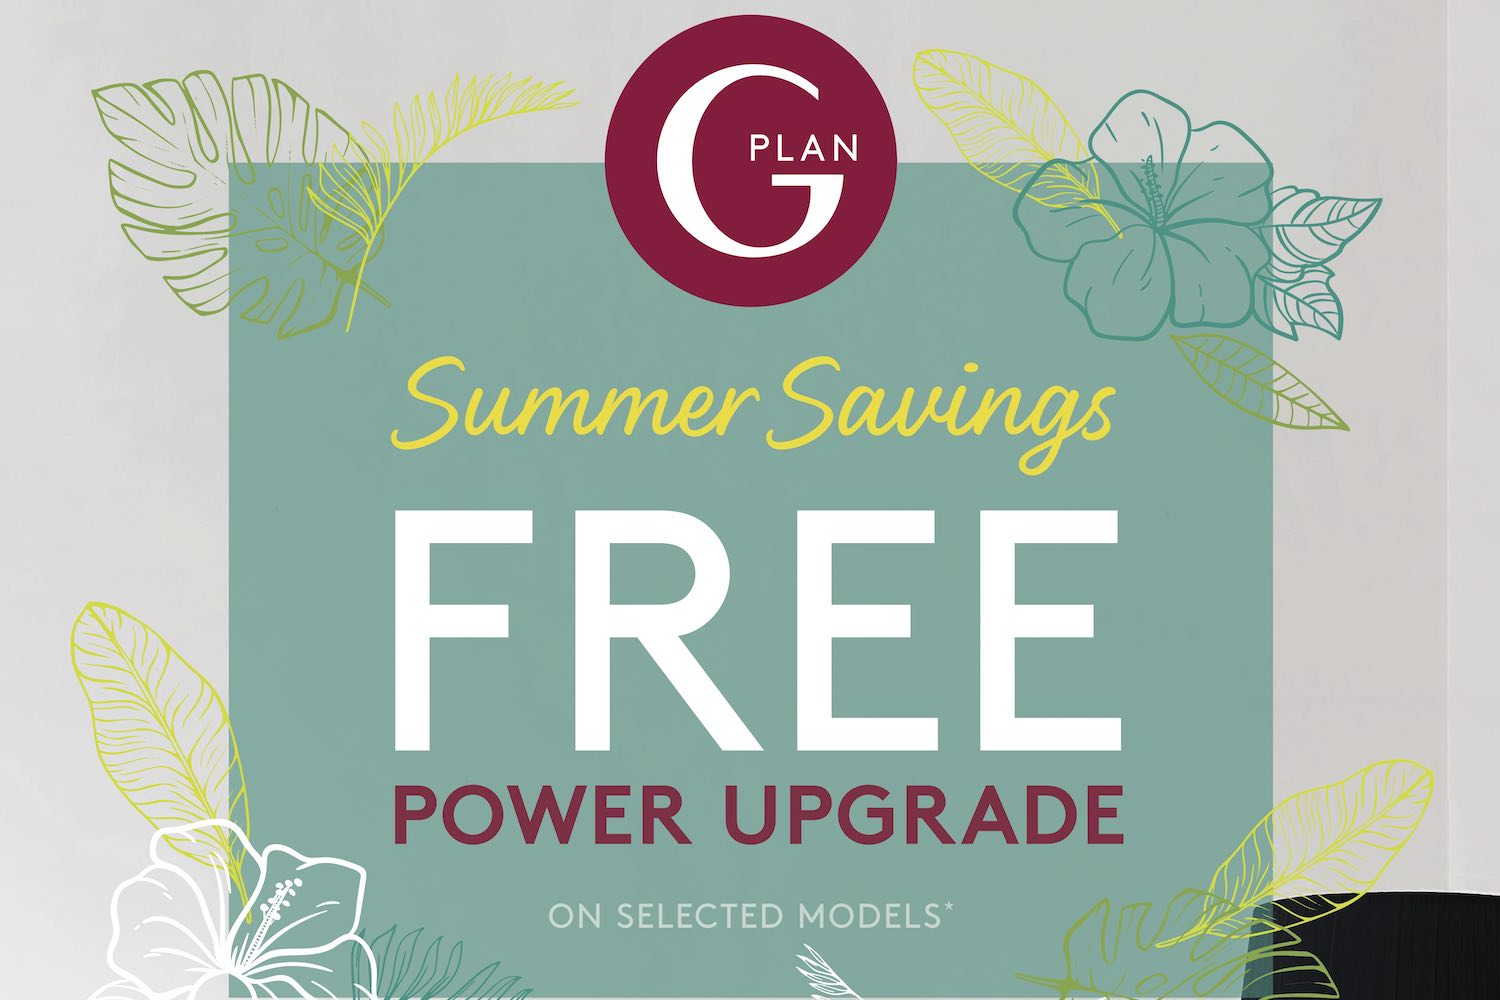 G Plan free power upgrade